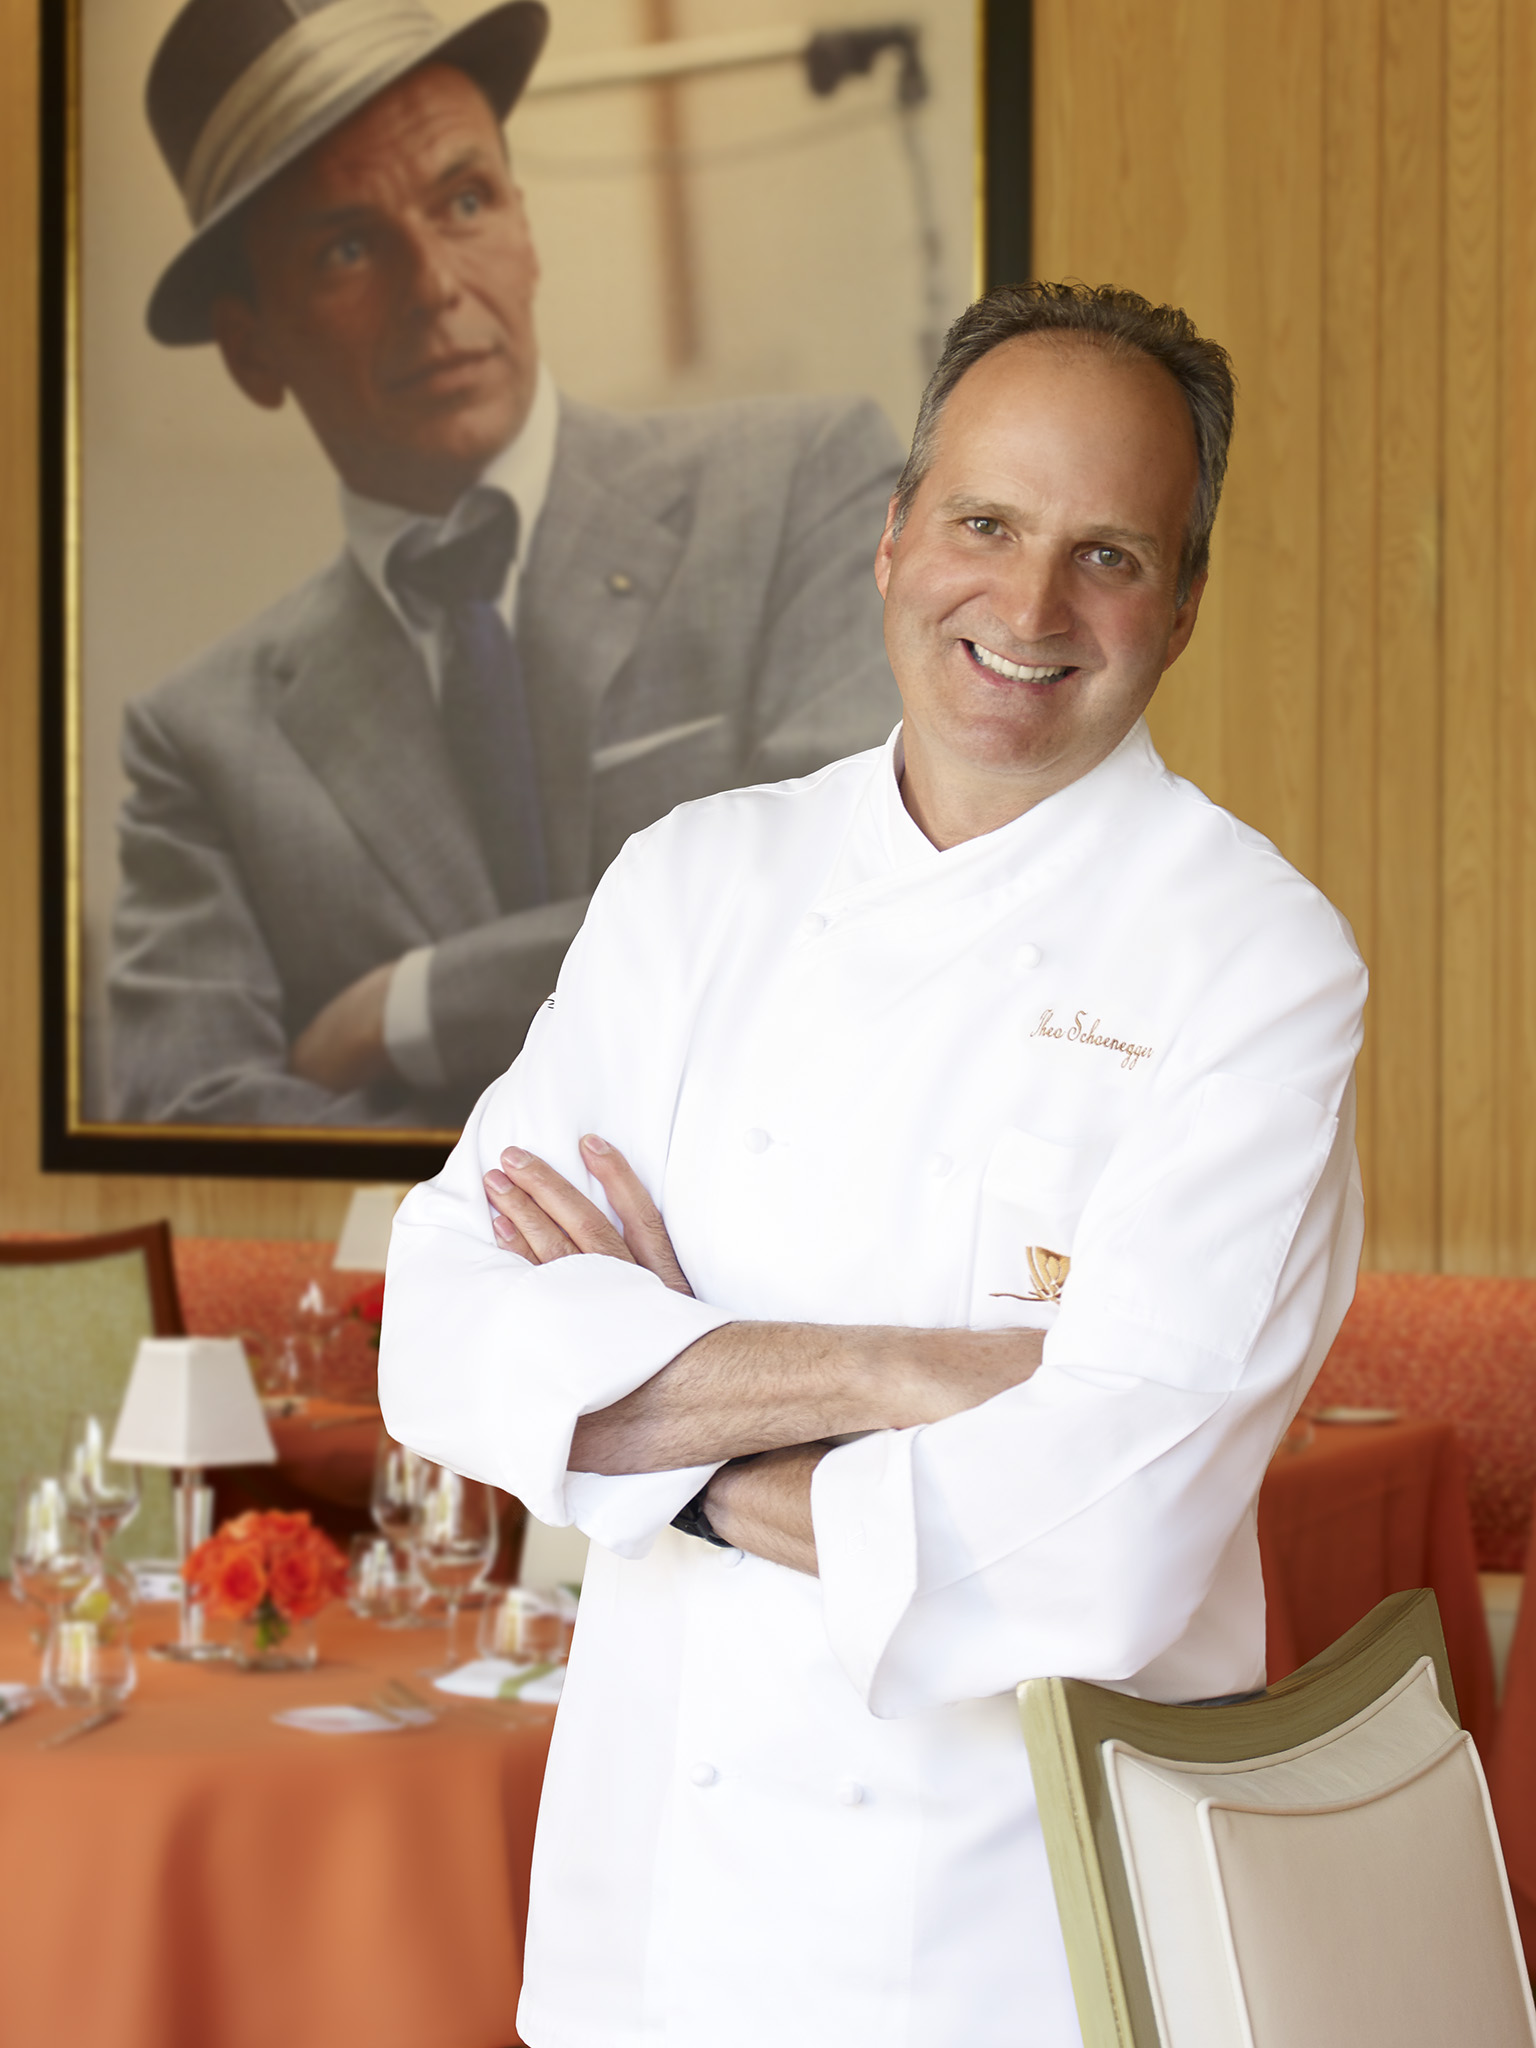 A chef in a white coat with his arms crossed standing in front of a photo of Frank Sinatra